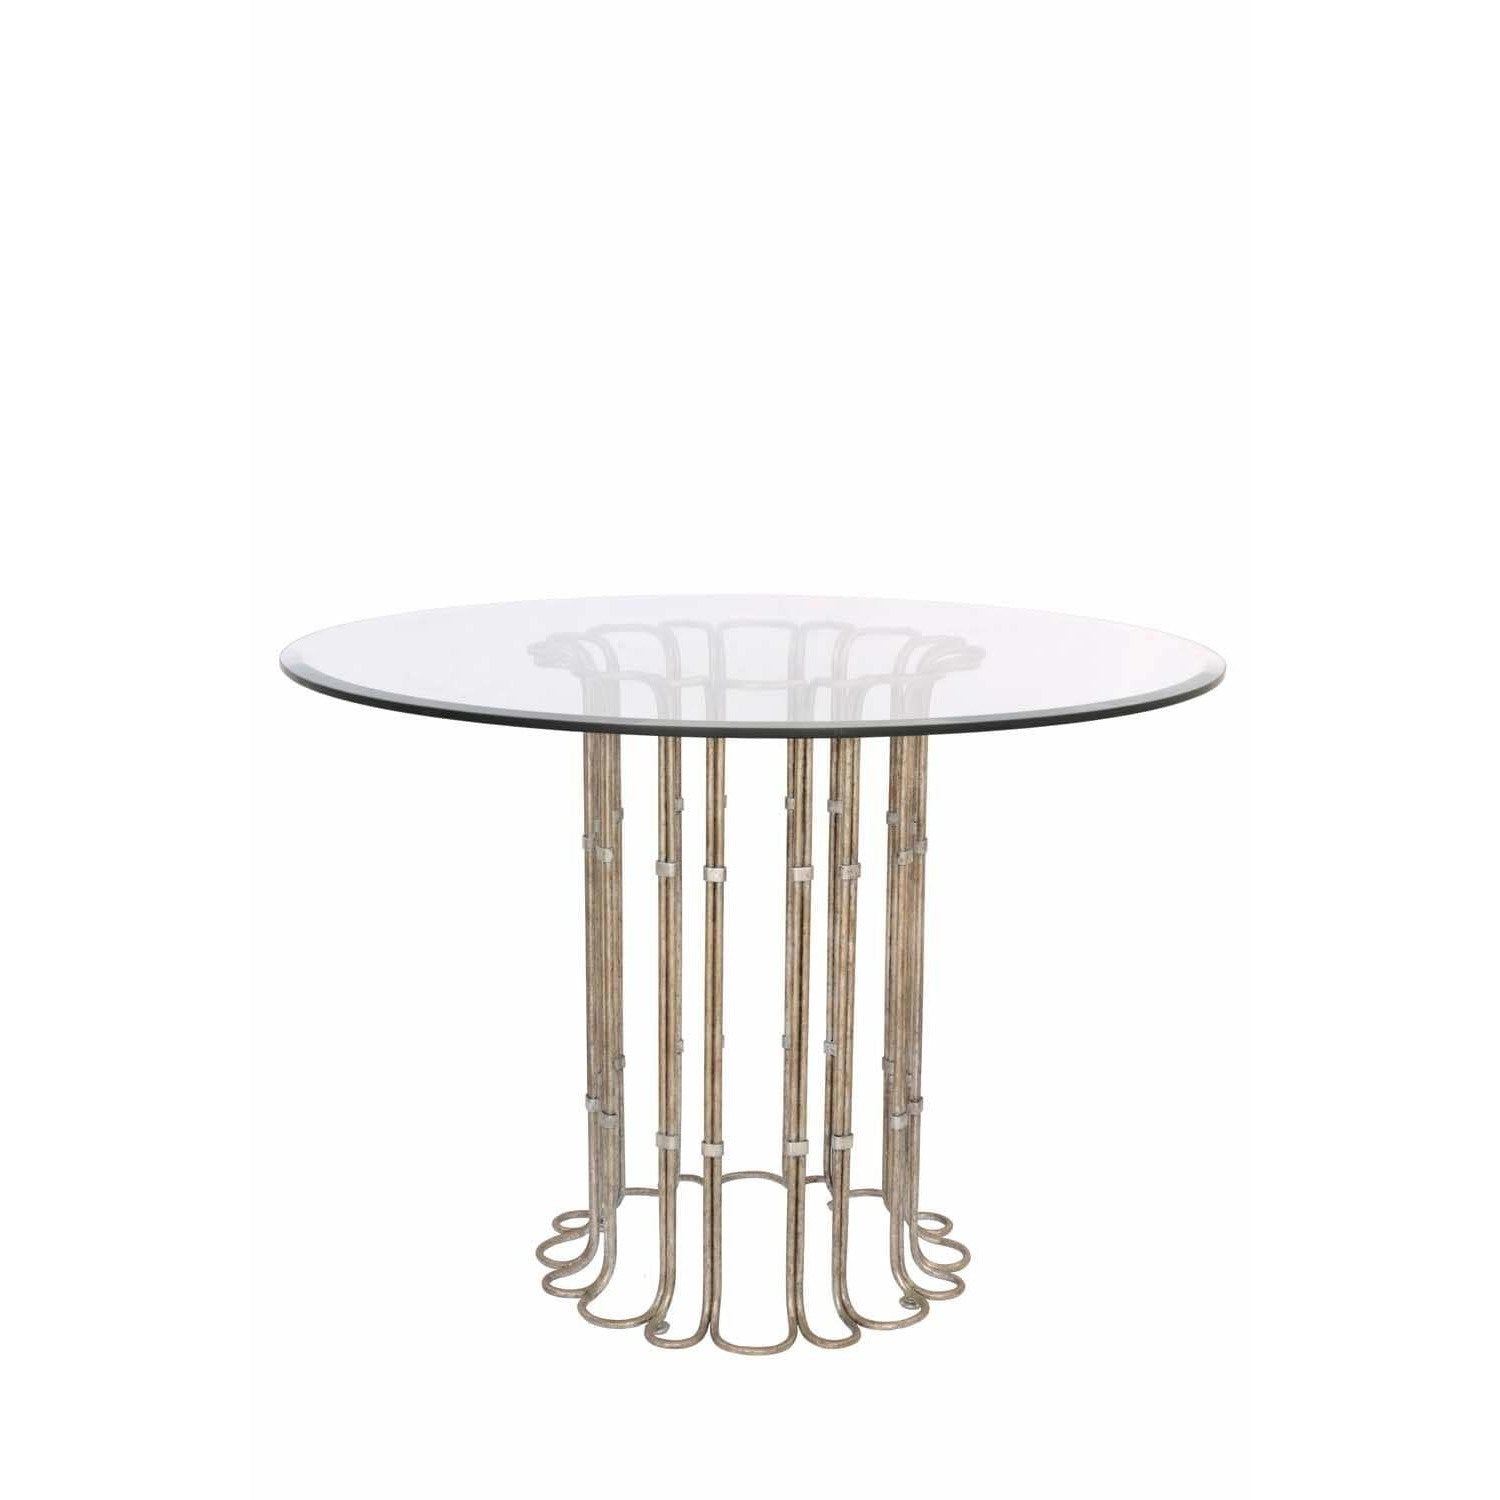 Kalco Lighting Dining Tables Platinum Biscayne 42 Inch Dining Table By Kalco Lighting 800202